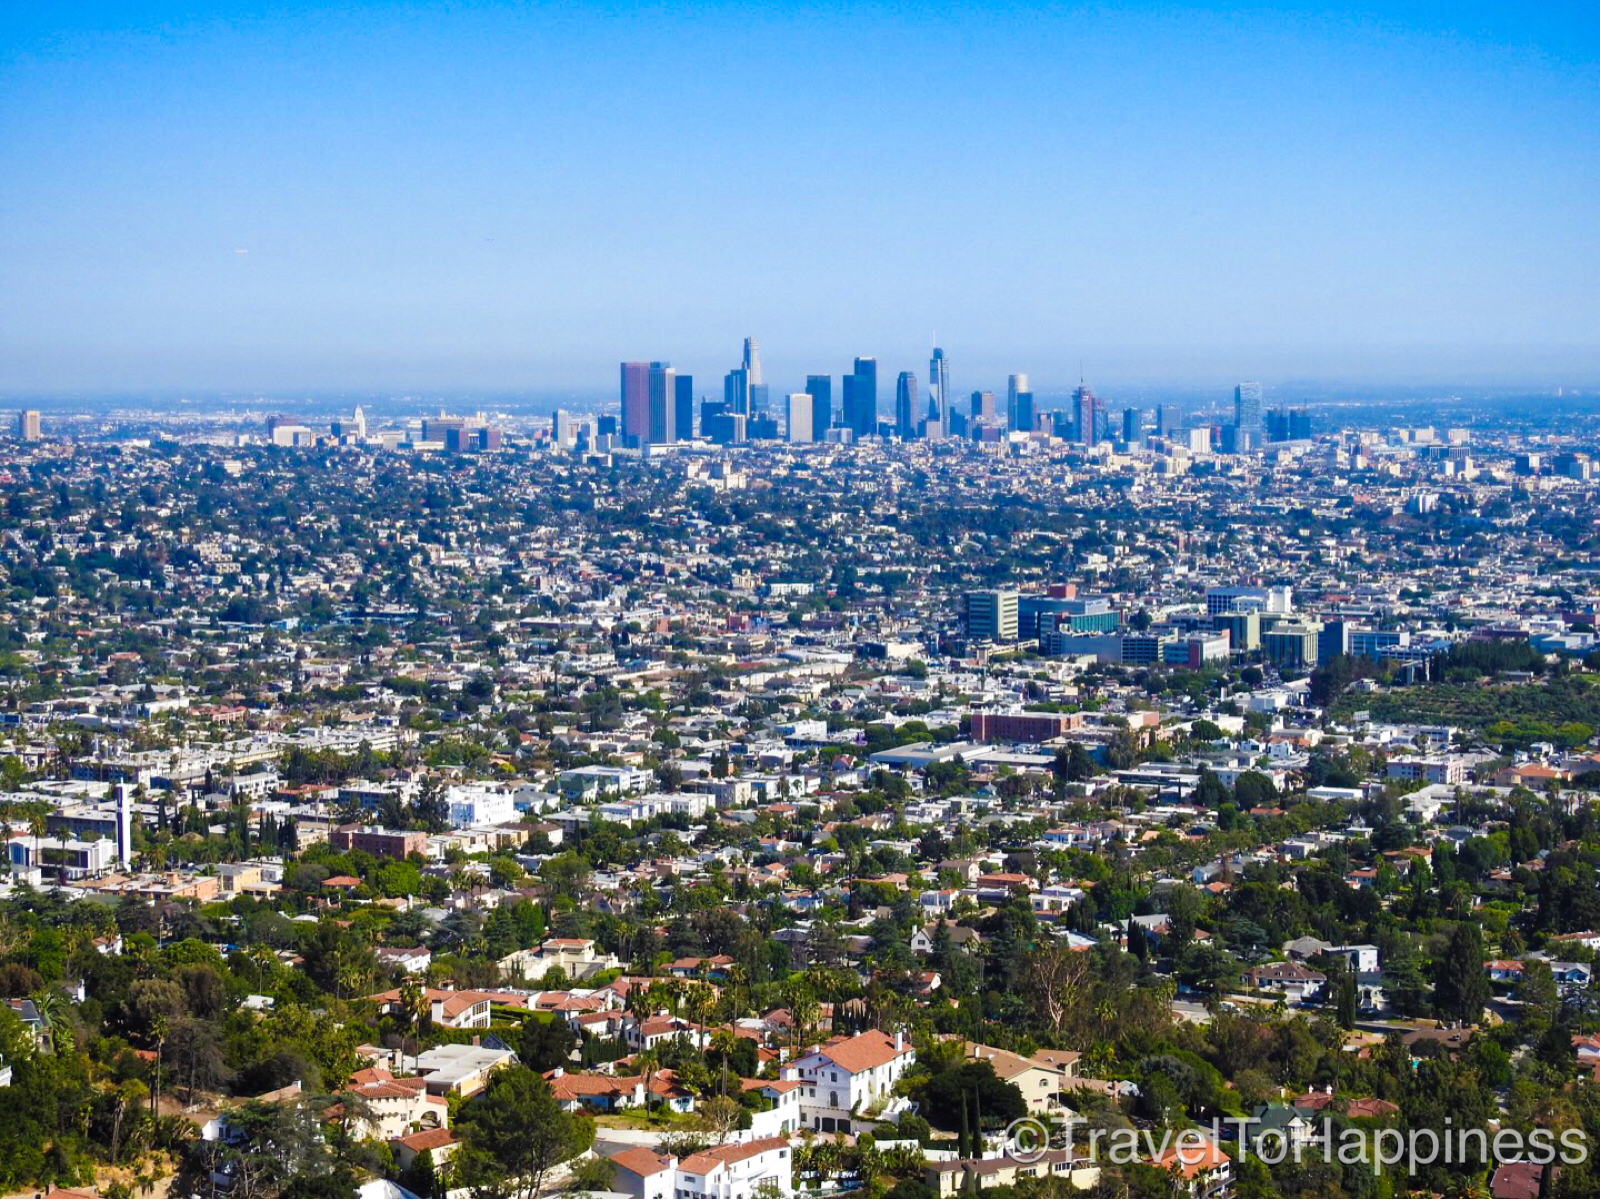 Los Angeles seen from Griffith Observatory